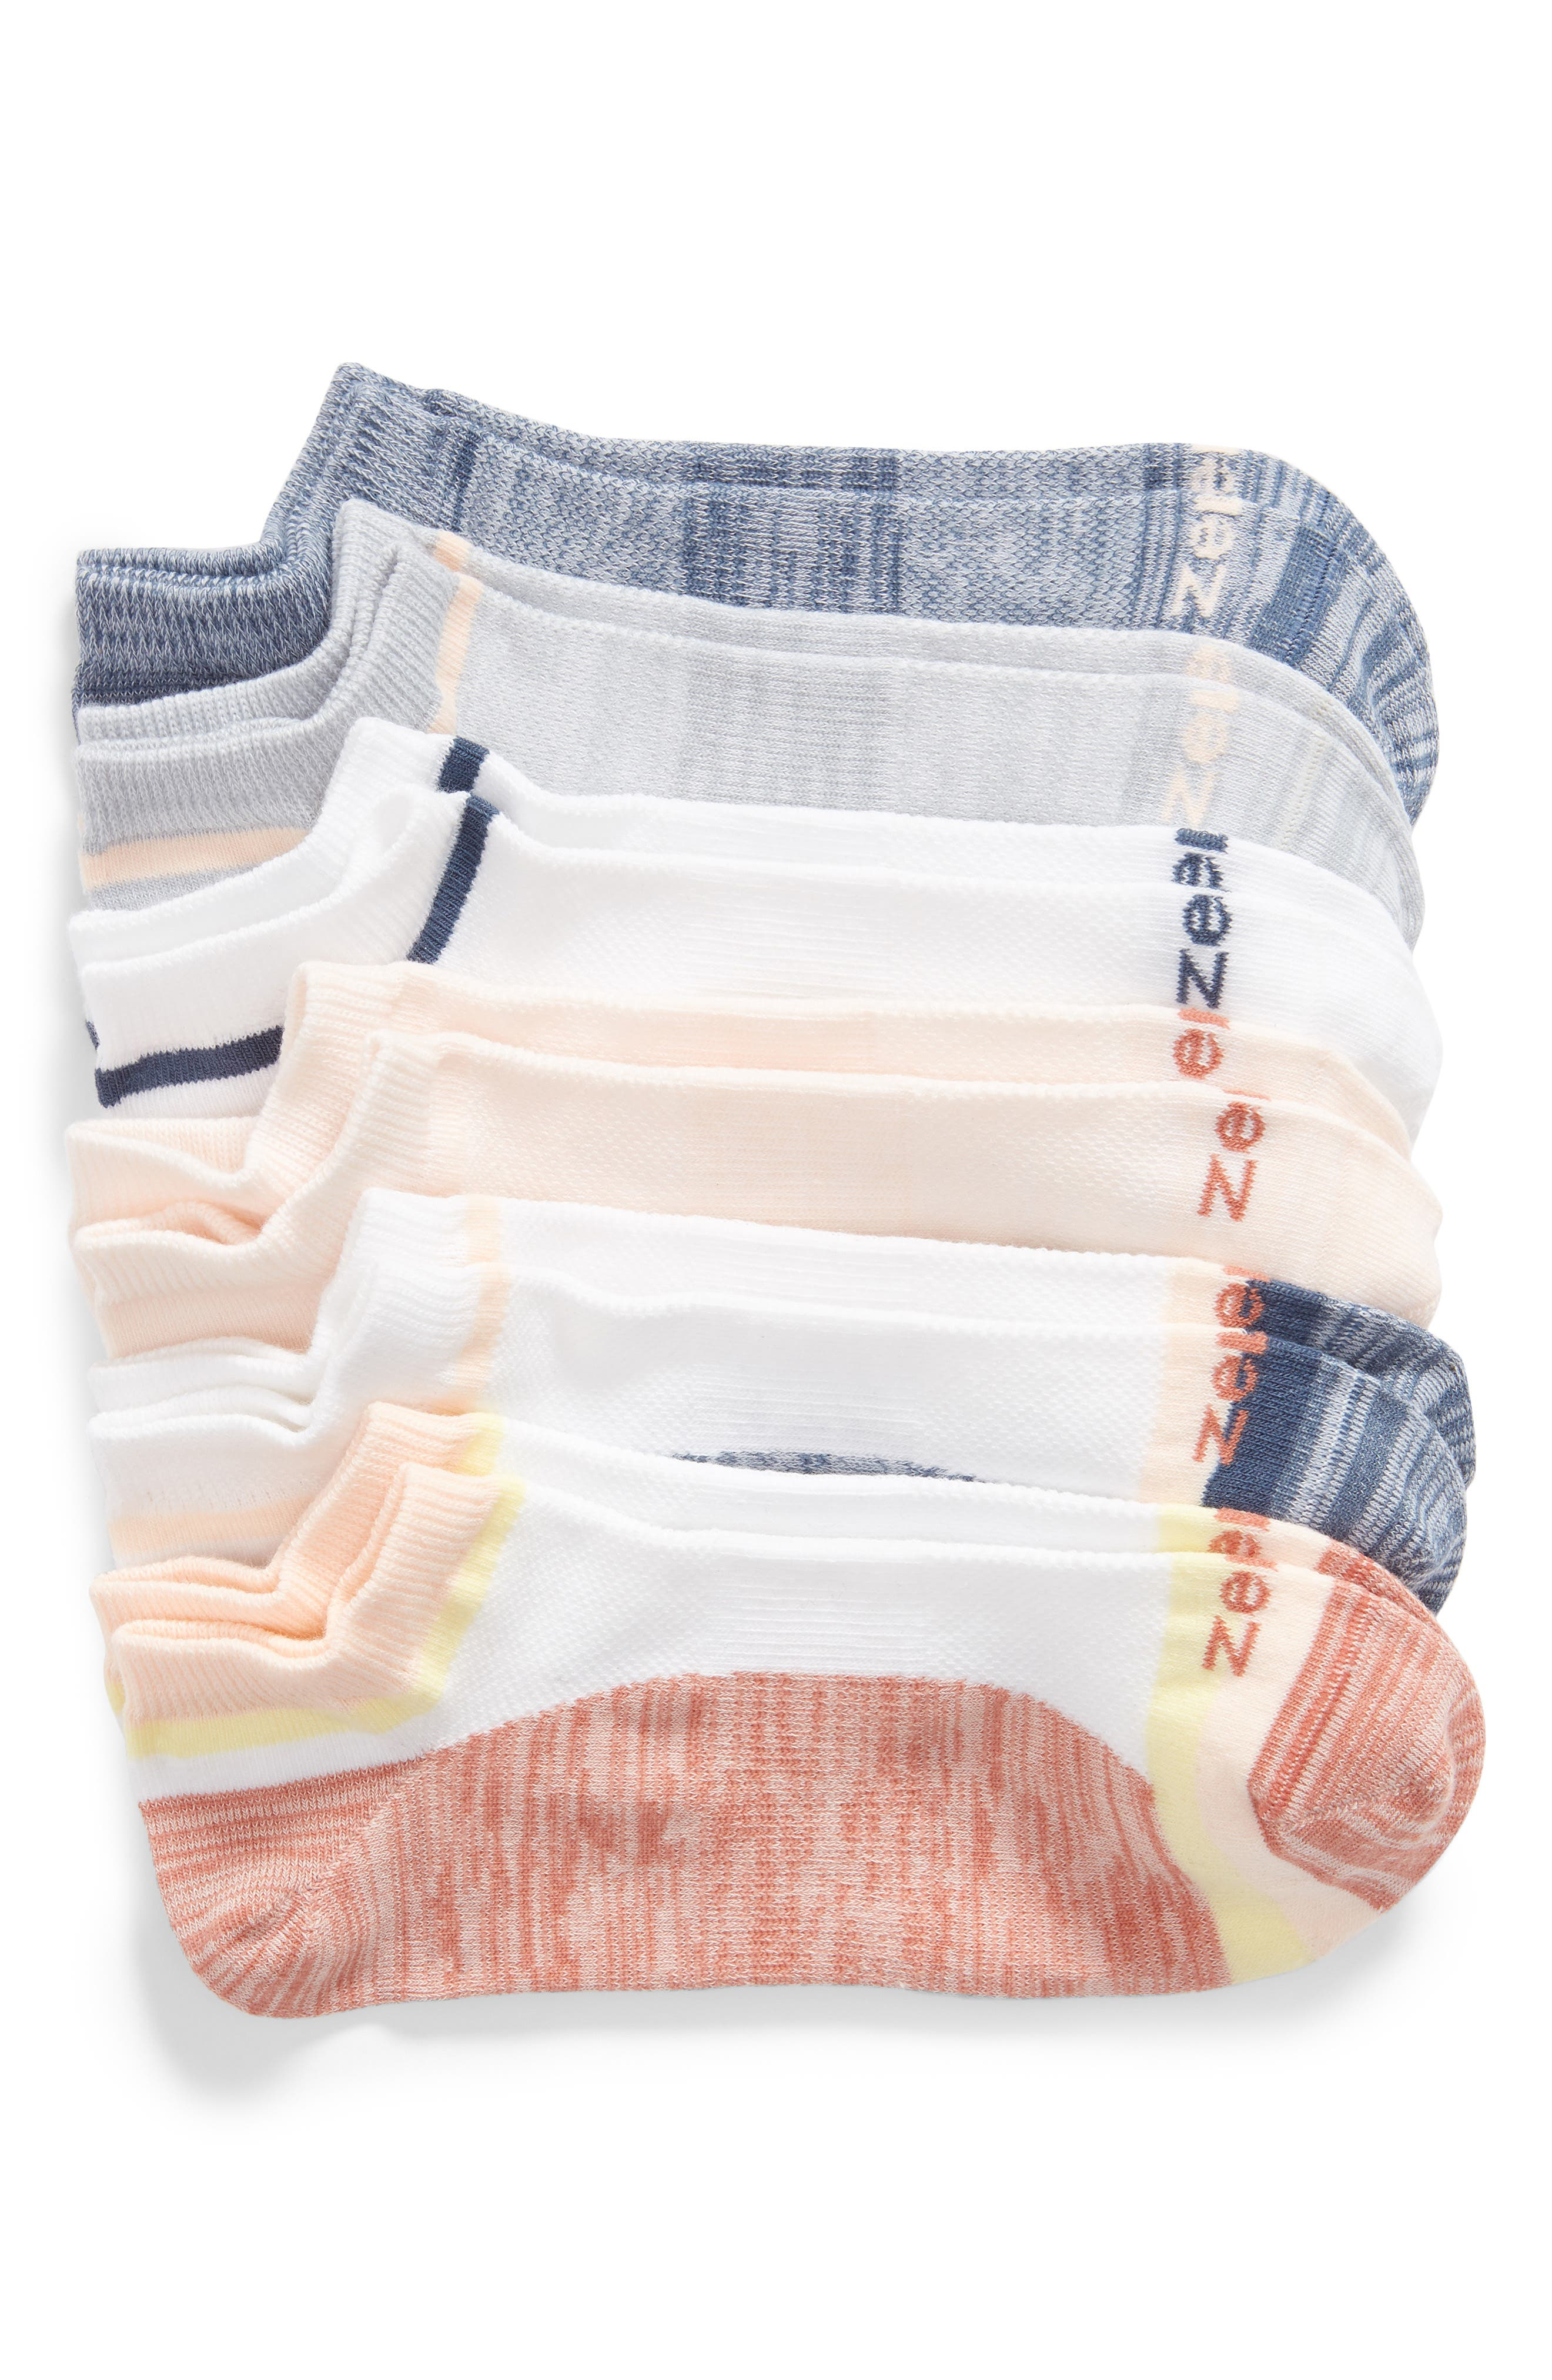 ZELLA 6-Pack Liner Socks, Main, color, PINK CANYON